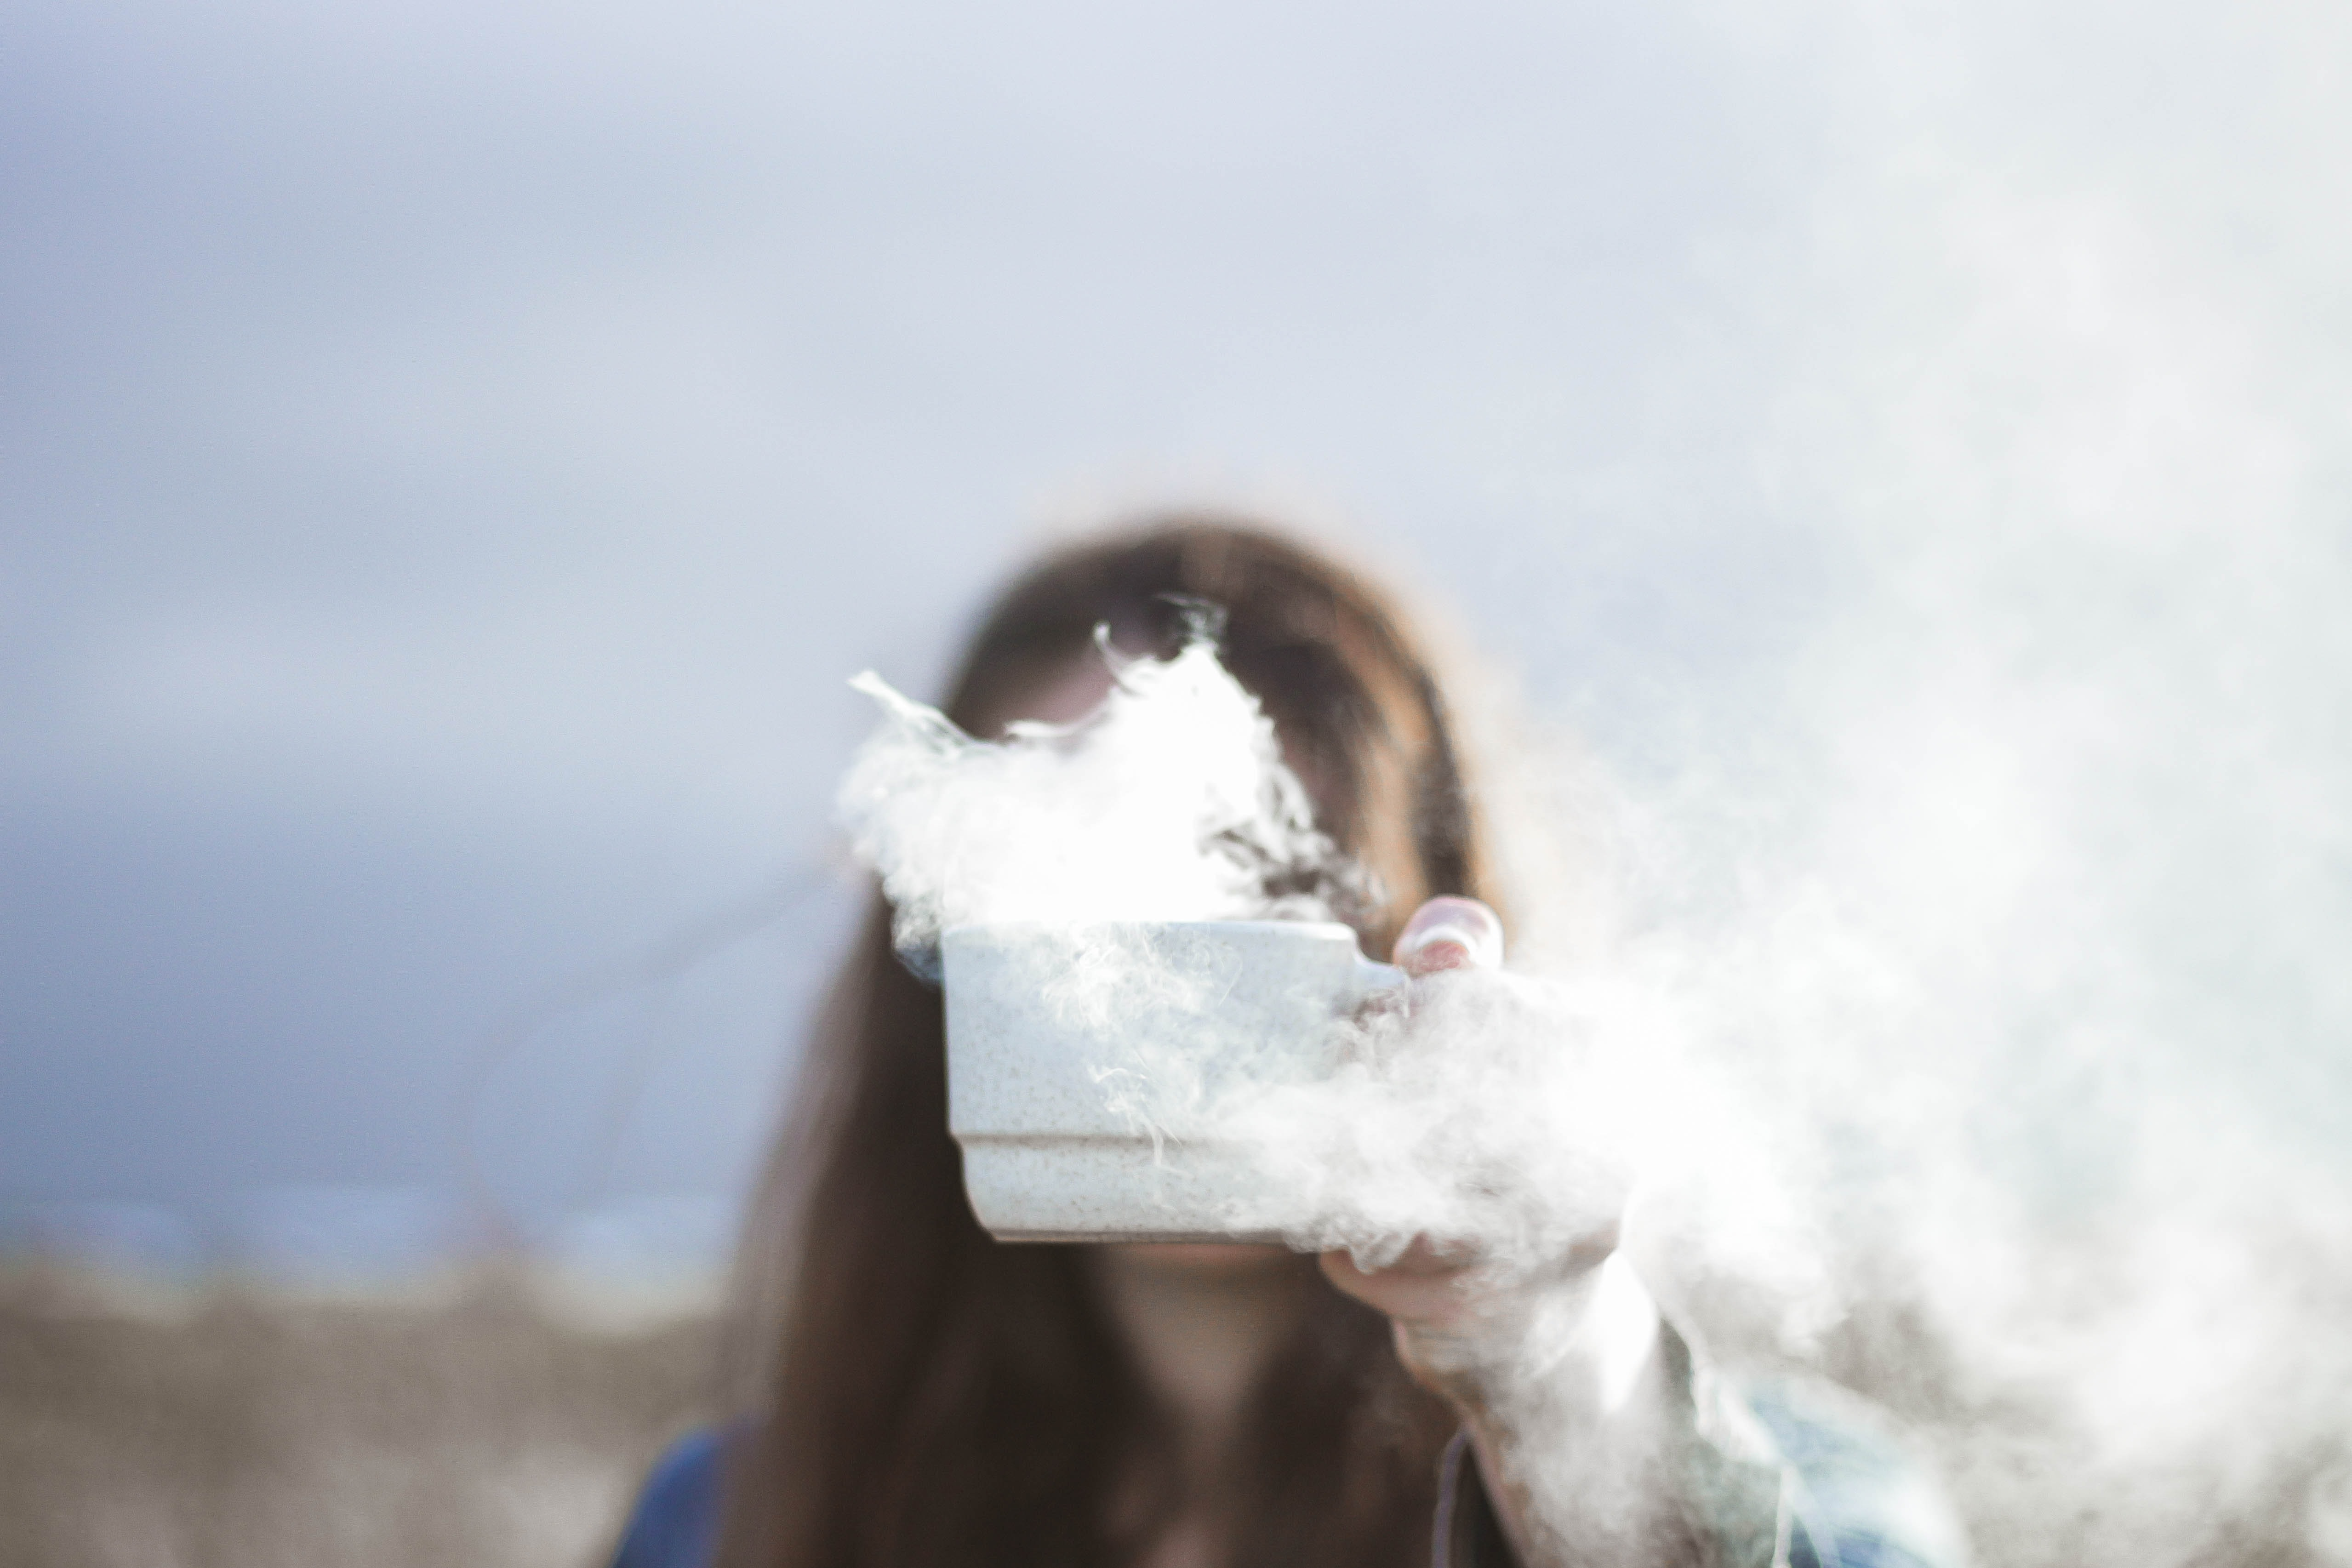 person holding white ceramic cup with smoke flowing inside